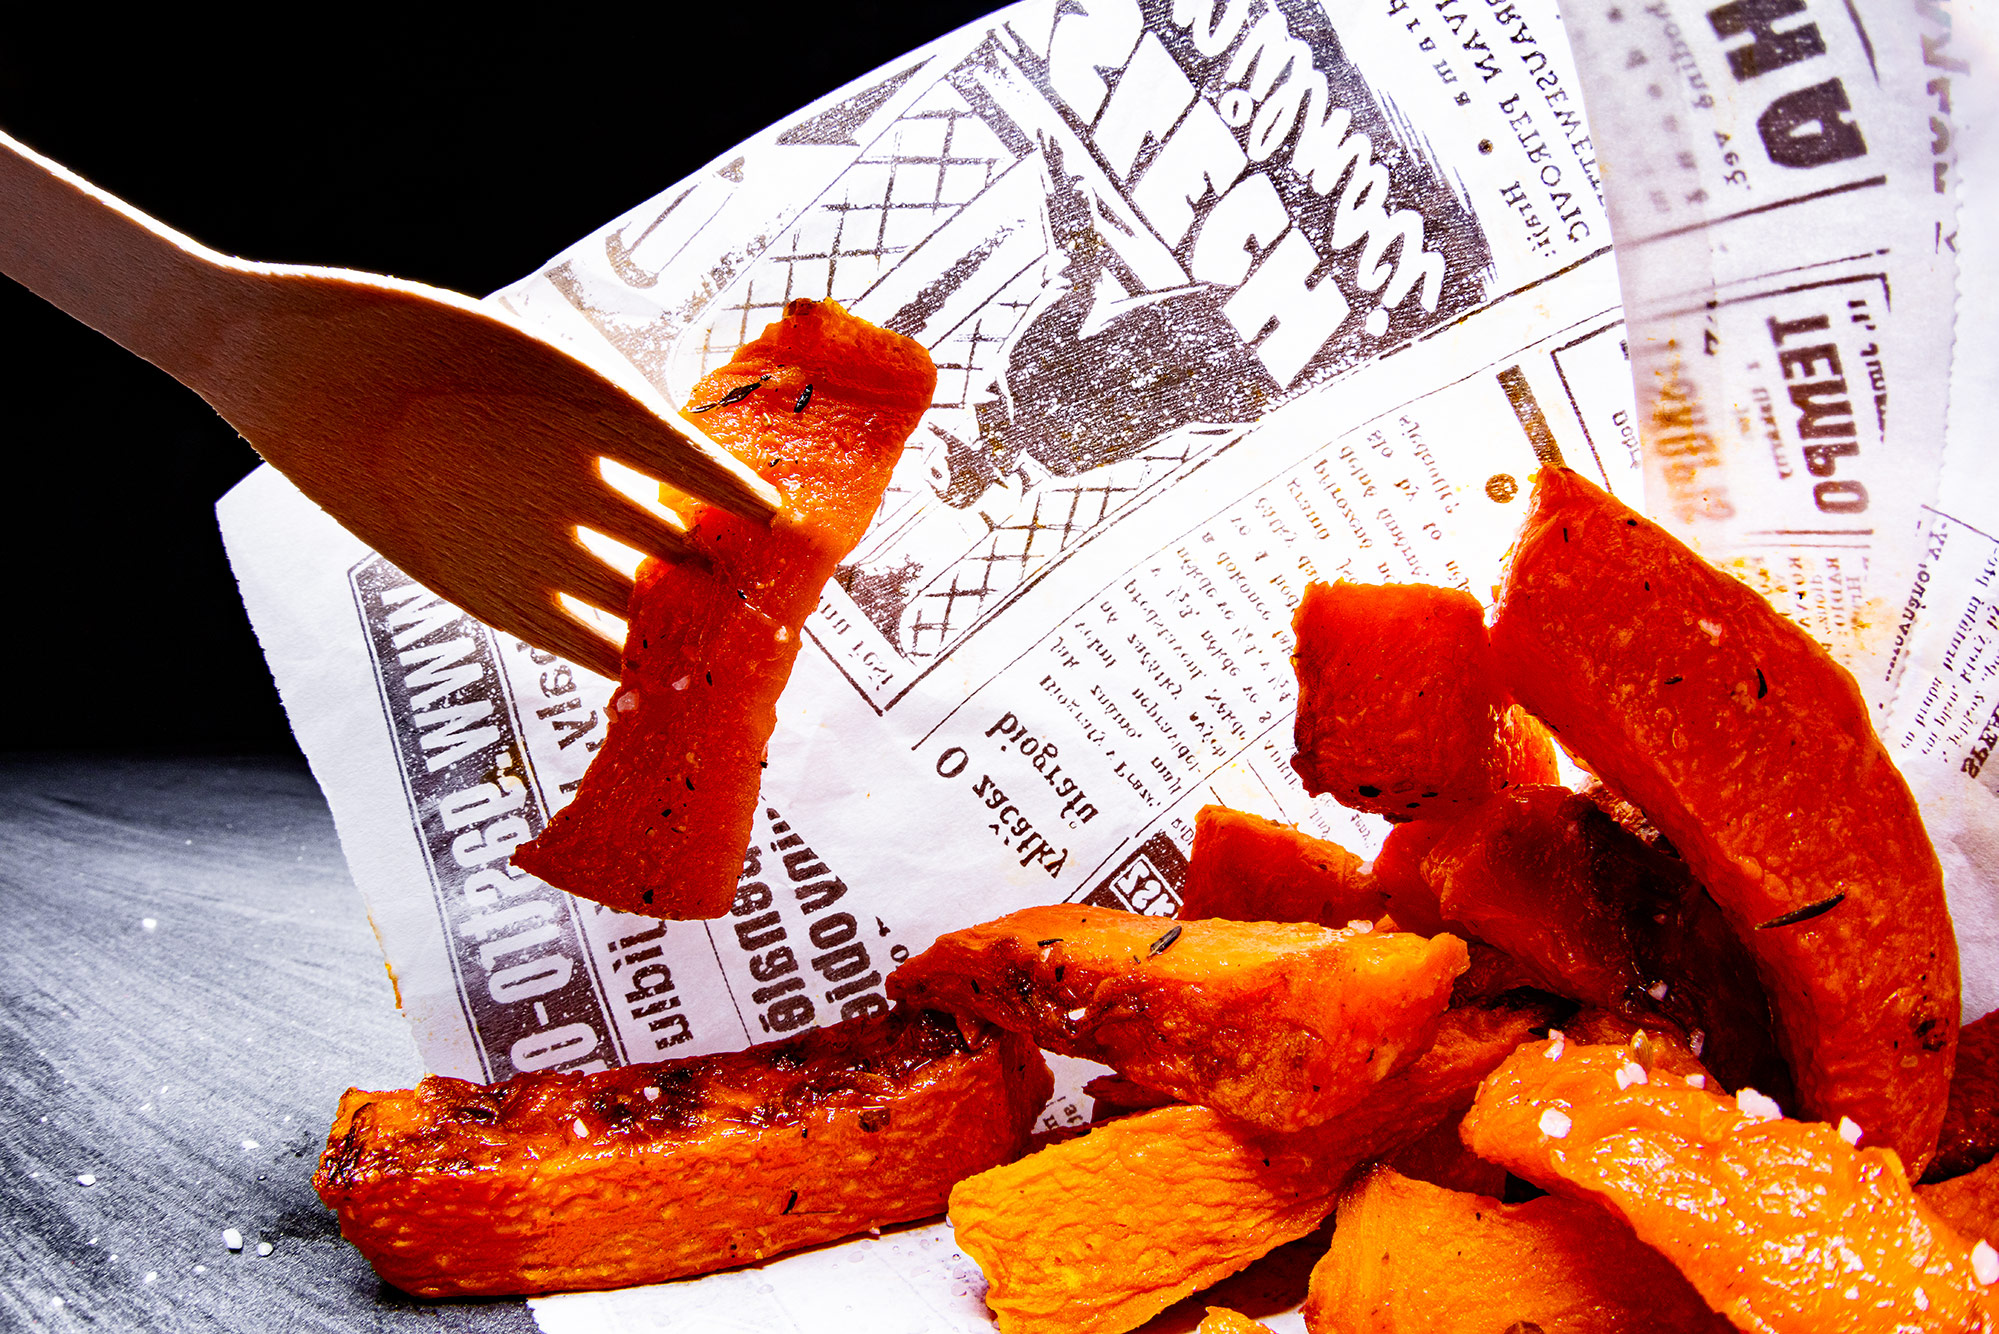 A portion of backed pumpkin fries wrapped in a newspaper. A single frie is picked up on a wooden fork.